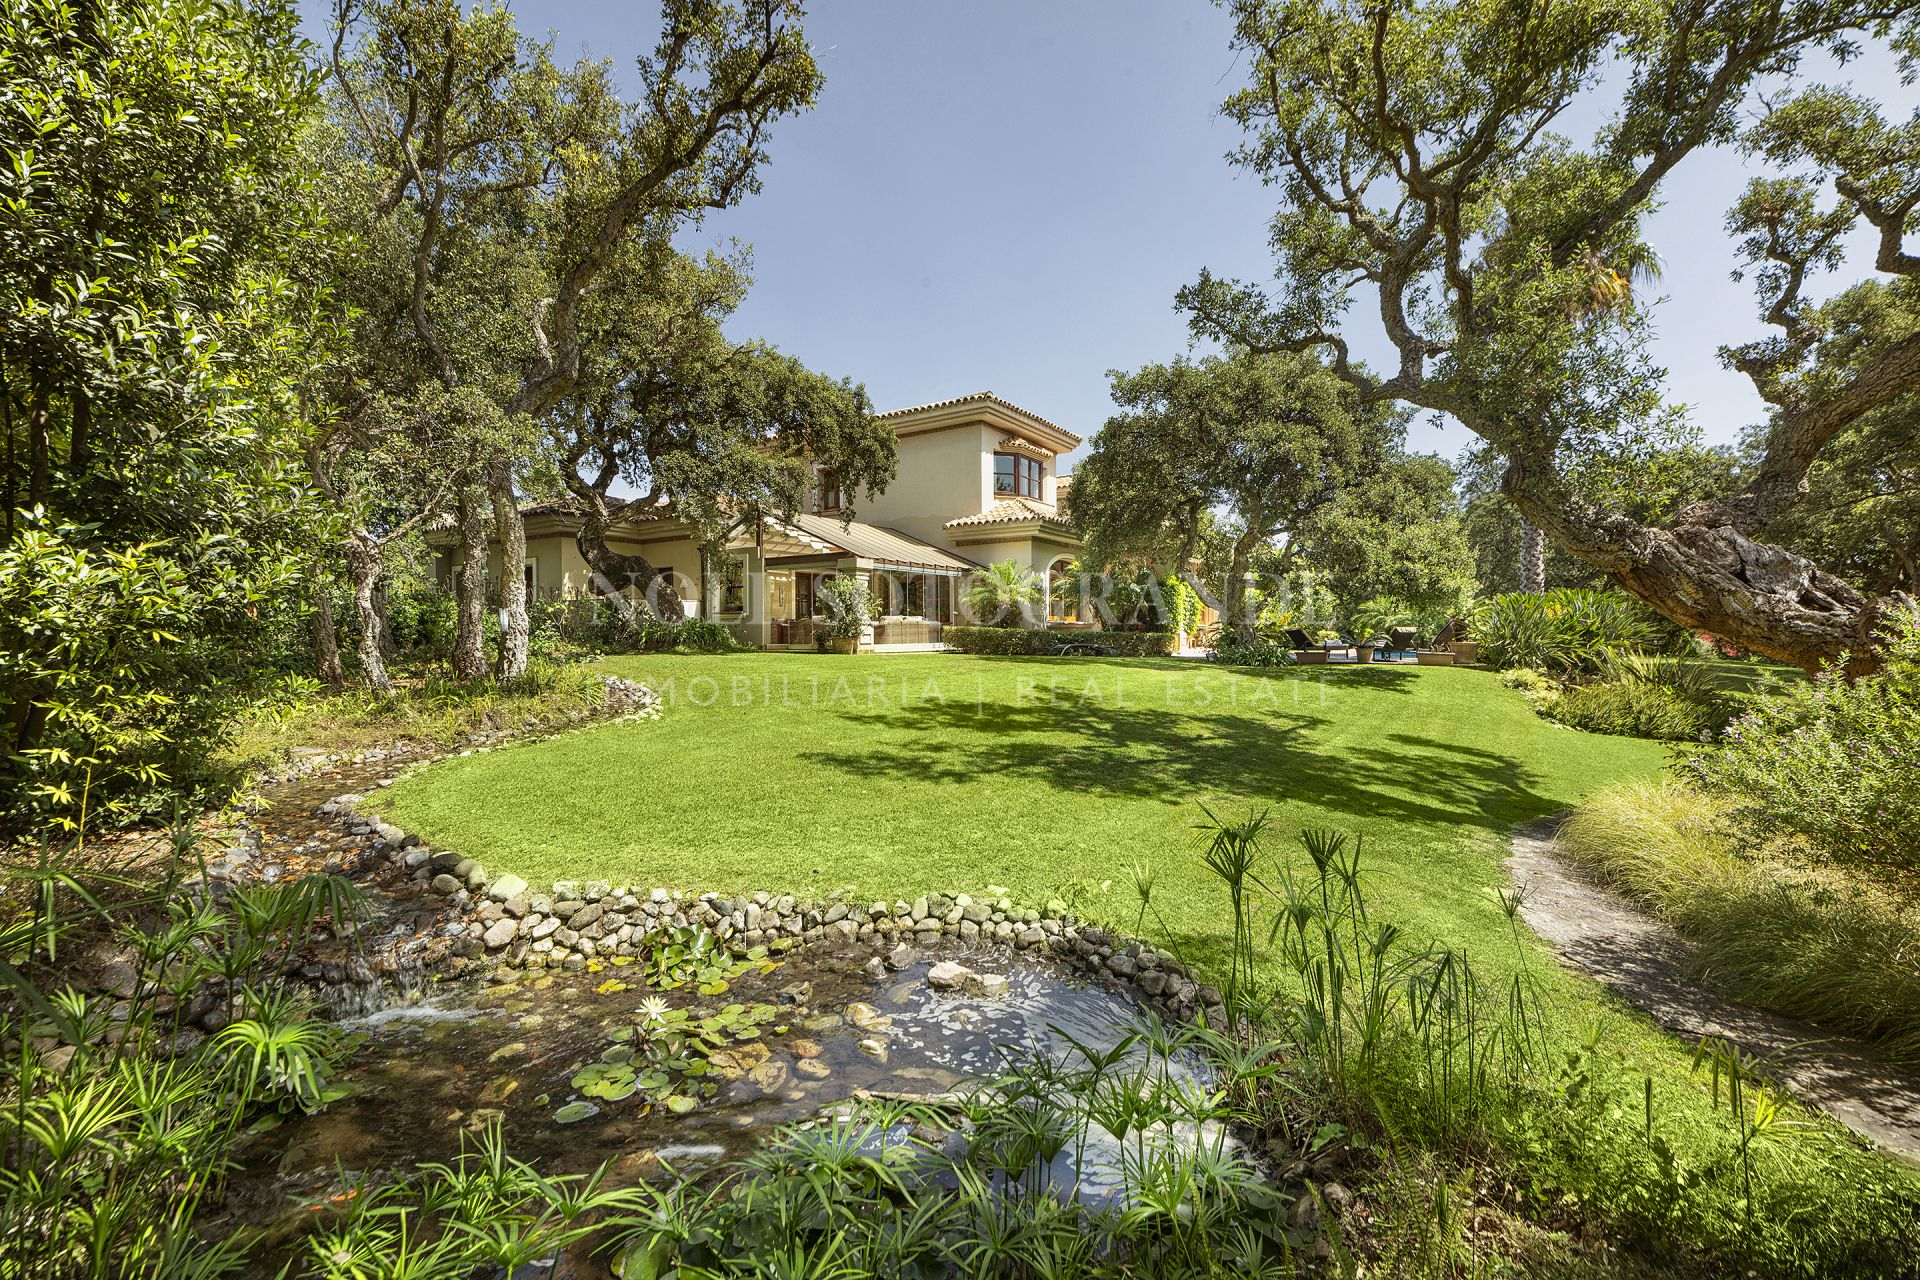 Villa for sale front line to Valderrama in Sotogrande Alto